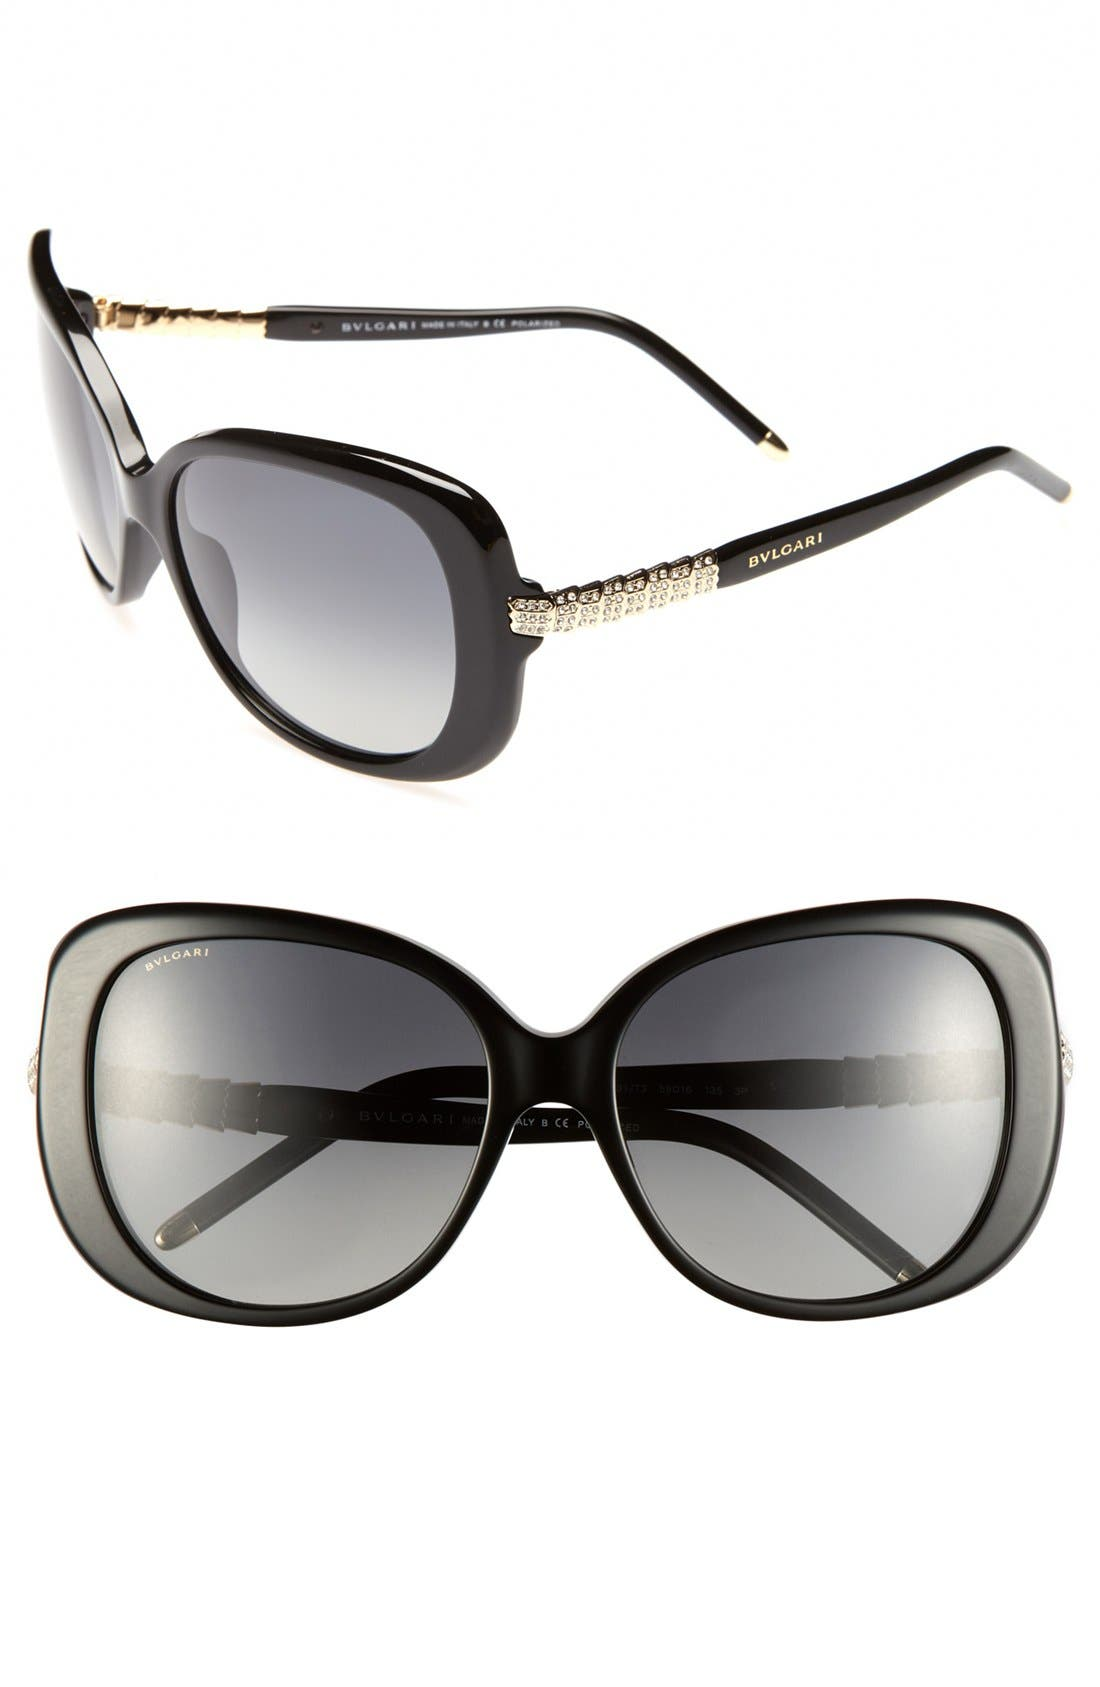 Alternate Image 1 Selected - BVLGARI 59mm Retro Sunglasses